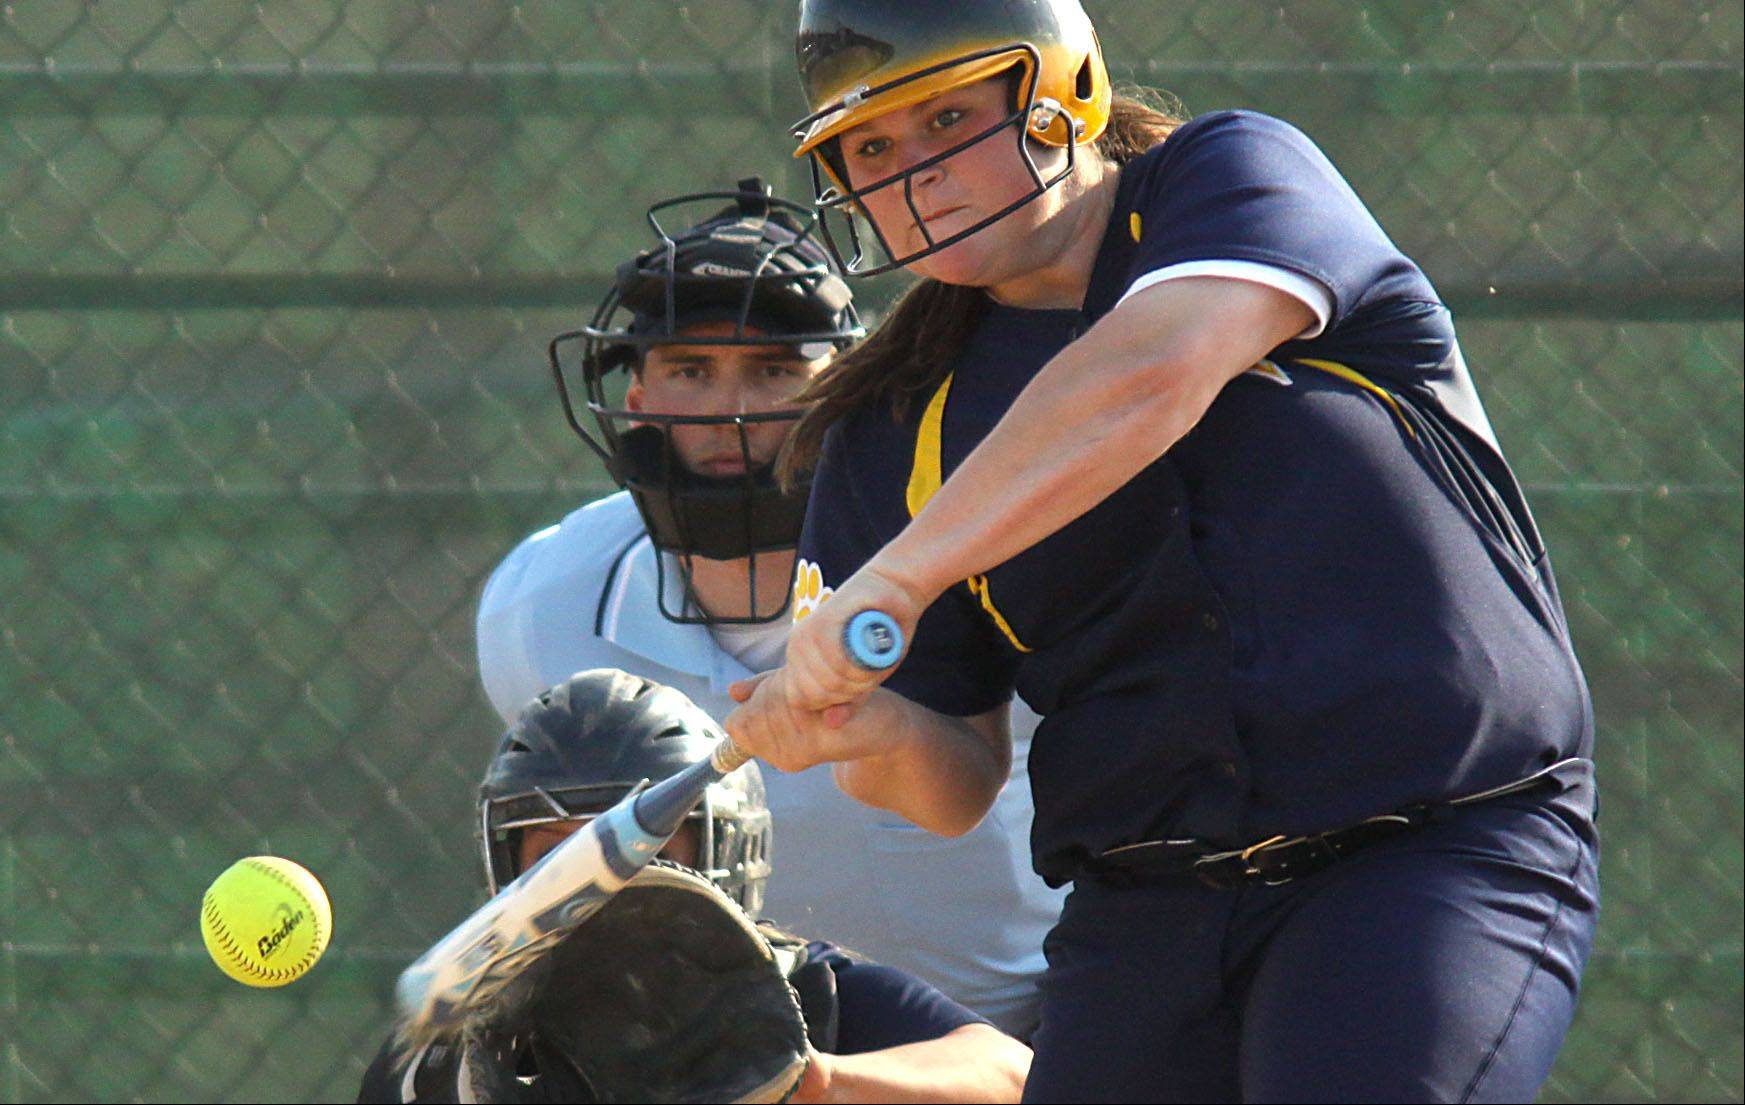 Neuqua Valley's Colleen Hill belts a home run during Wednesday's softball game at South Elgin.